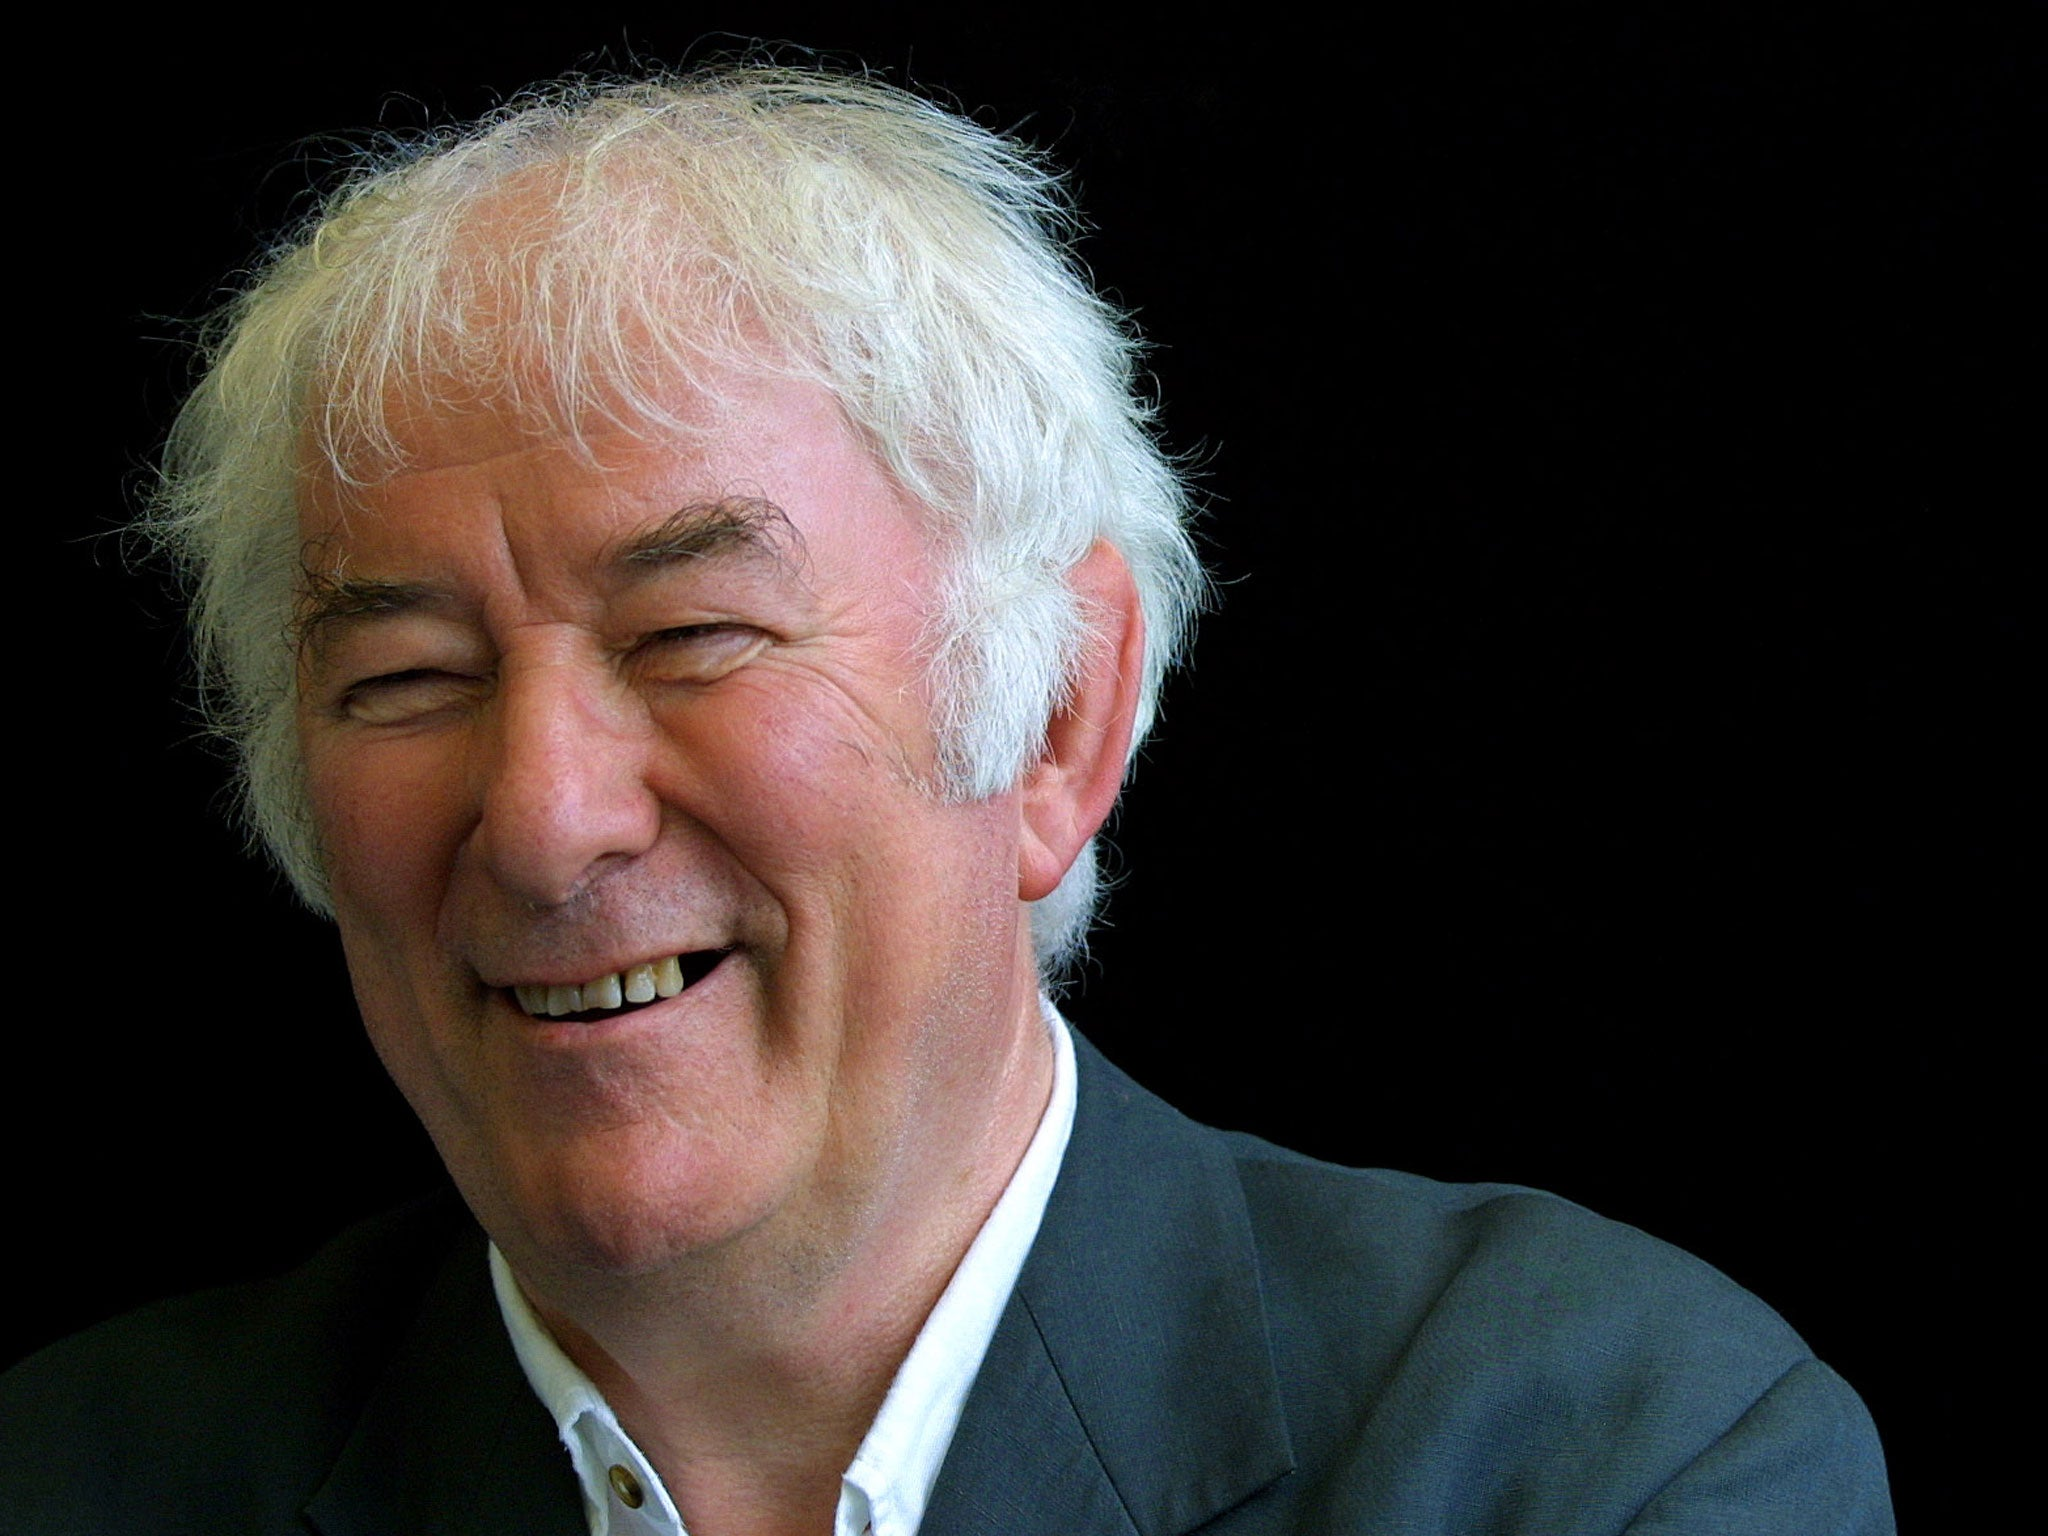 seamus heaney Back to top about the poet seamus heaney was born on april 13, 1939, on a farm in castledawson, county derry, northern ireland, the eldest of eight children.